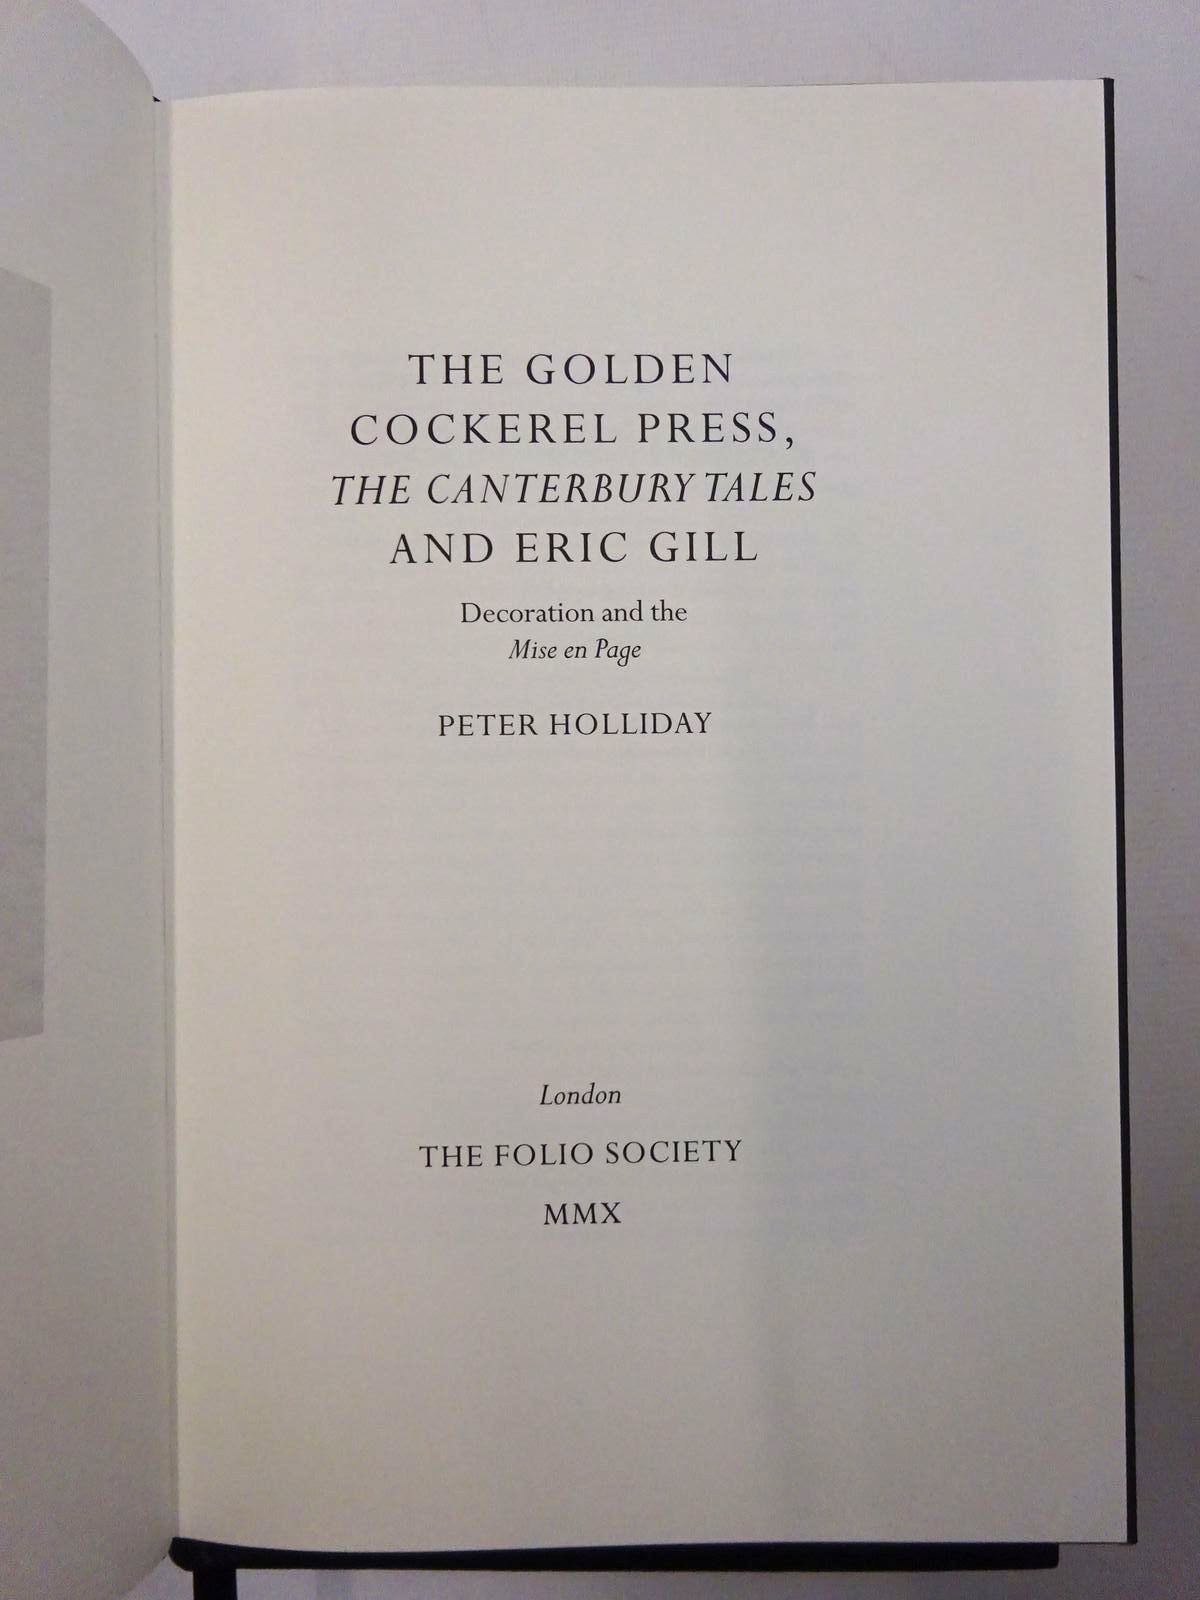 Photo of THE CANTERBURY TALES written by Chaucer, Geoffrey<br />Holliday, Peter illustrated by Gill, Eric published by Folio Society, The Golden Cockerel Press (STOCK CODE: 2124512)  for sale by Stella & Rose's Books